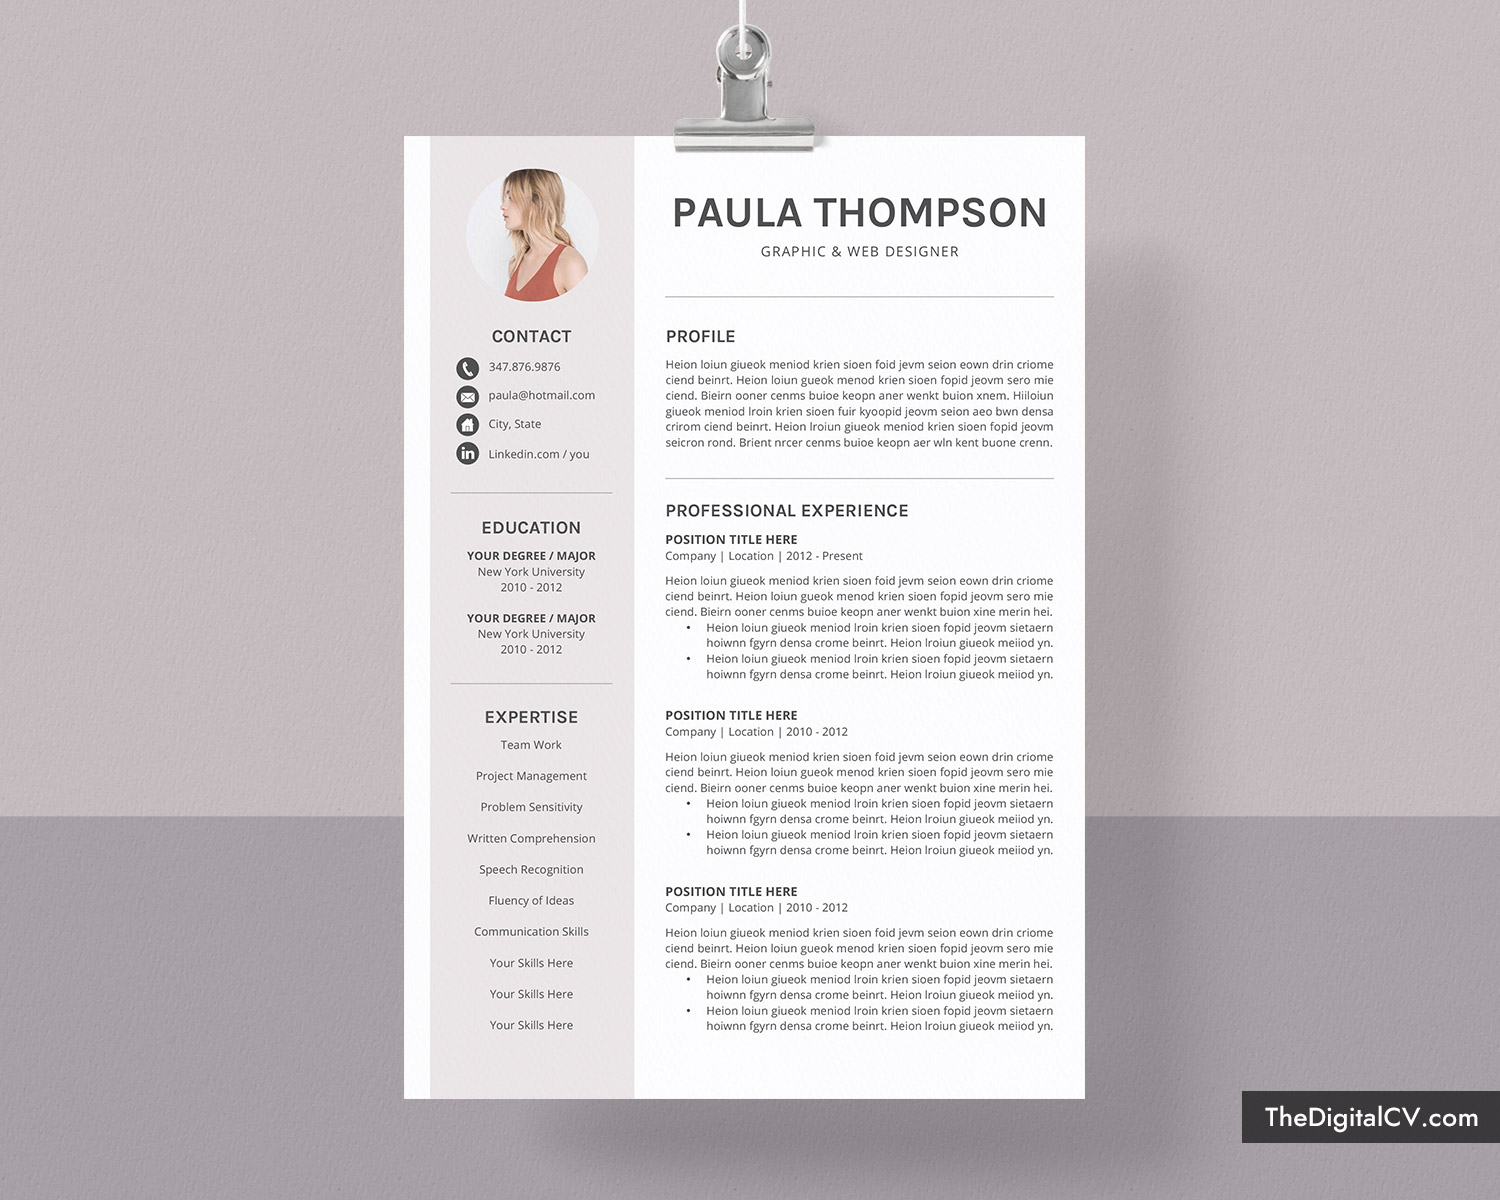 Modern Cv Template For Ms Word 2019 2020 Simple Basic Resume Template 1 3 Page Creative Resume Professional Resume Job Resume Editable Resume